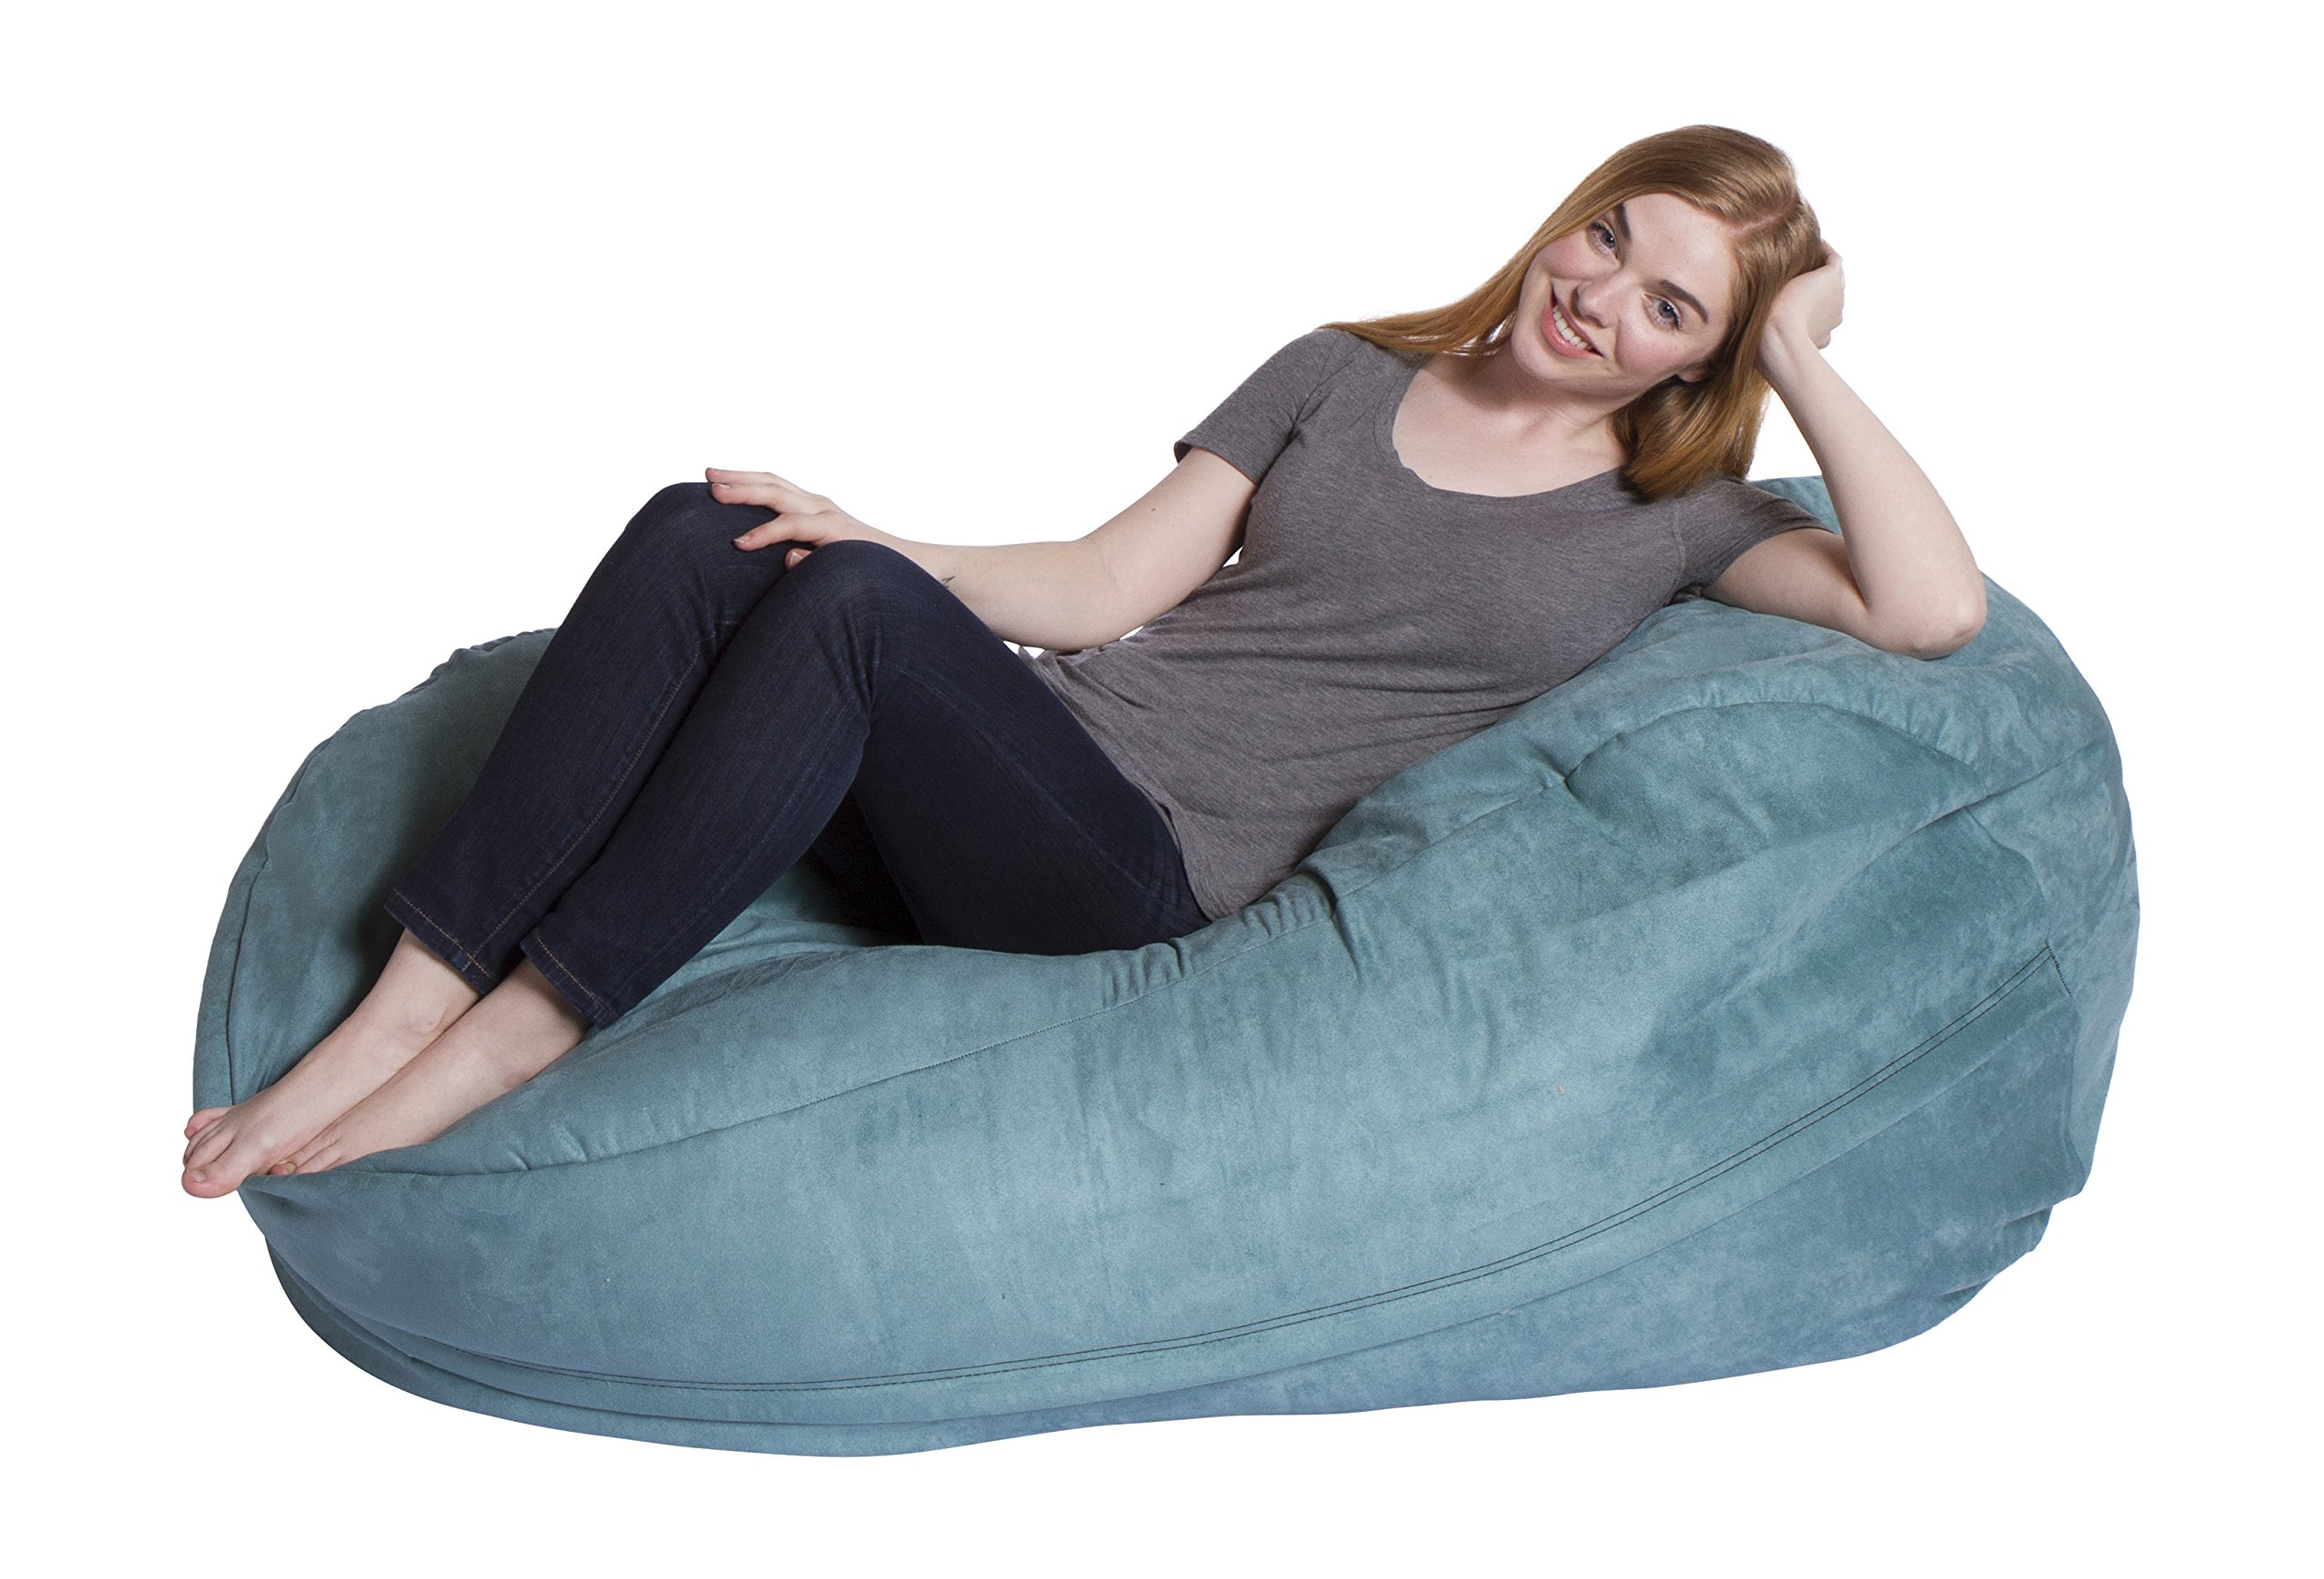 Giant Bean Bag Chair Econo Foam-Filled Lounge Sac